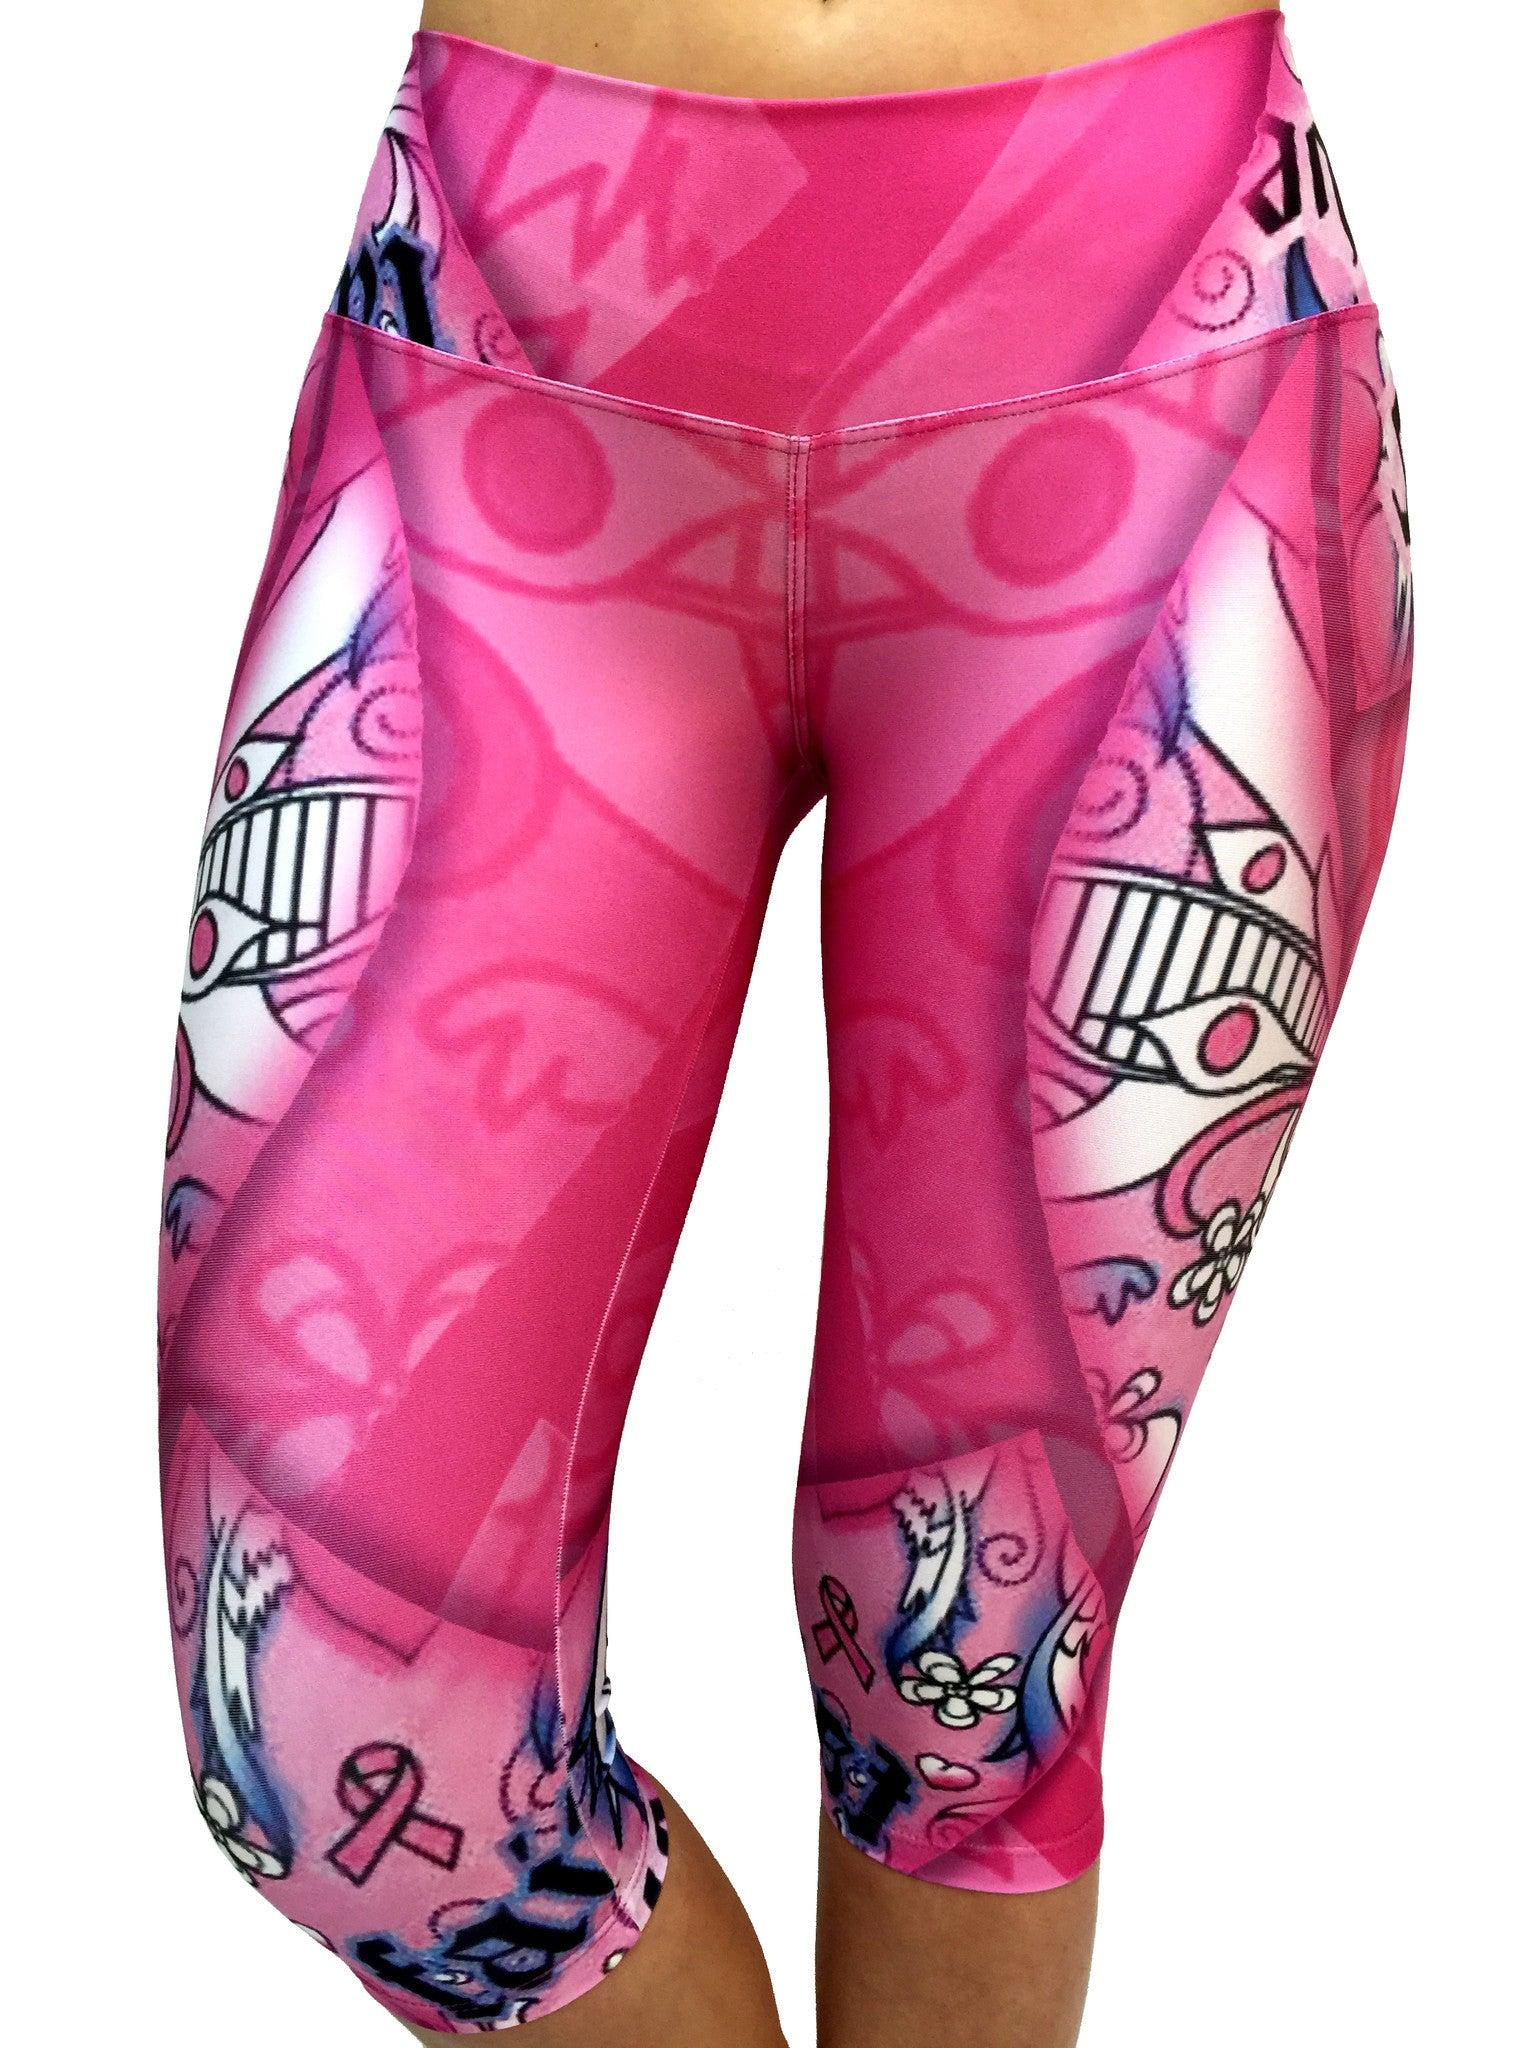 Hope Capri - Leggings - Butterfly Armor